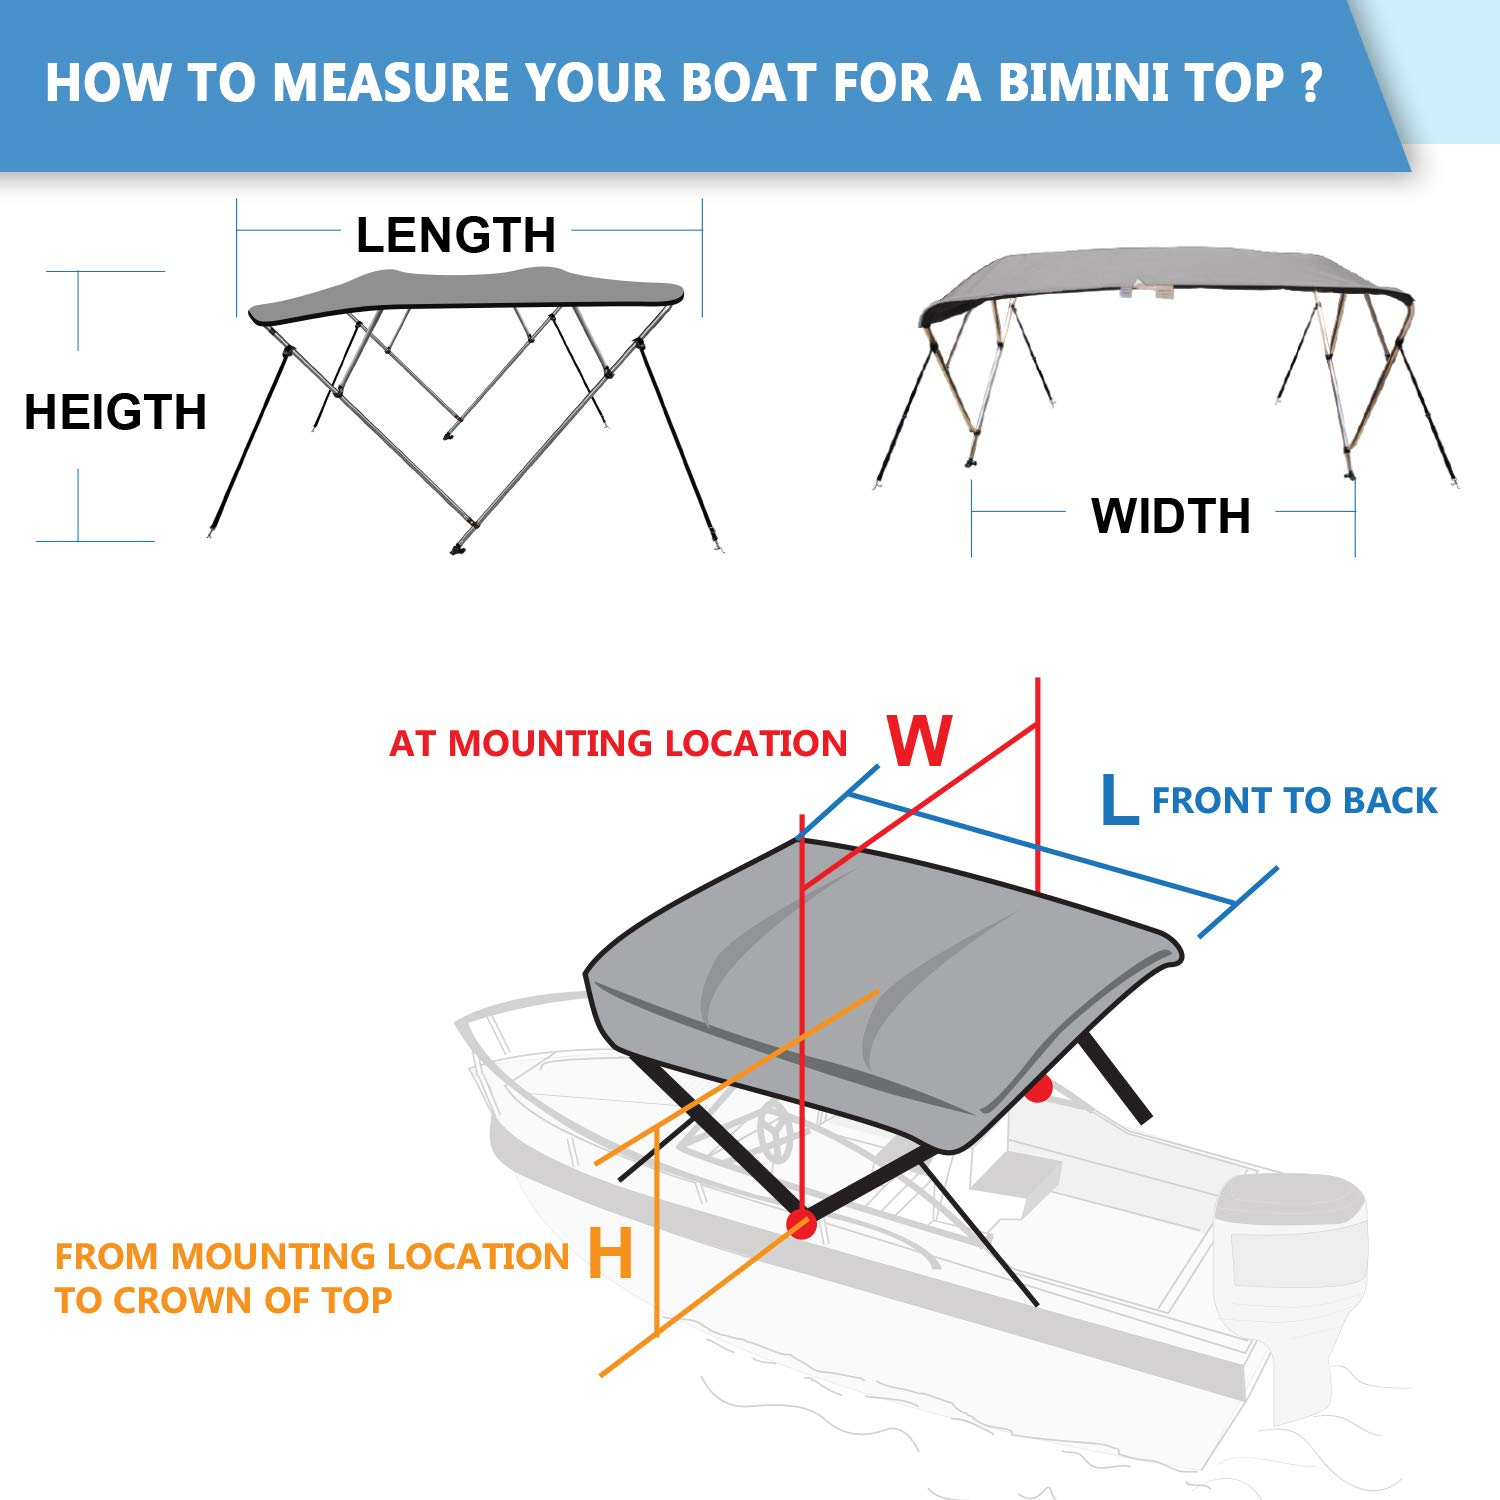 XGEAR 3-4 Bow Bimini Top Boat Cover with 4 Straps Full Size in Color Grey Pacific Beige Black Mounting Hardwares and Storage Boot Navy White Green